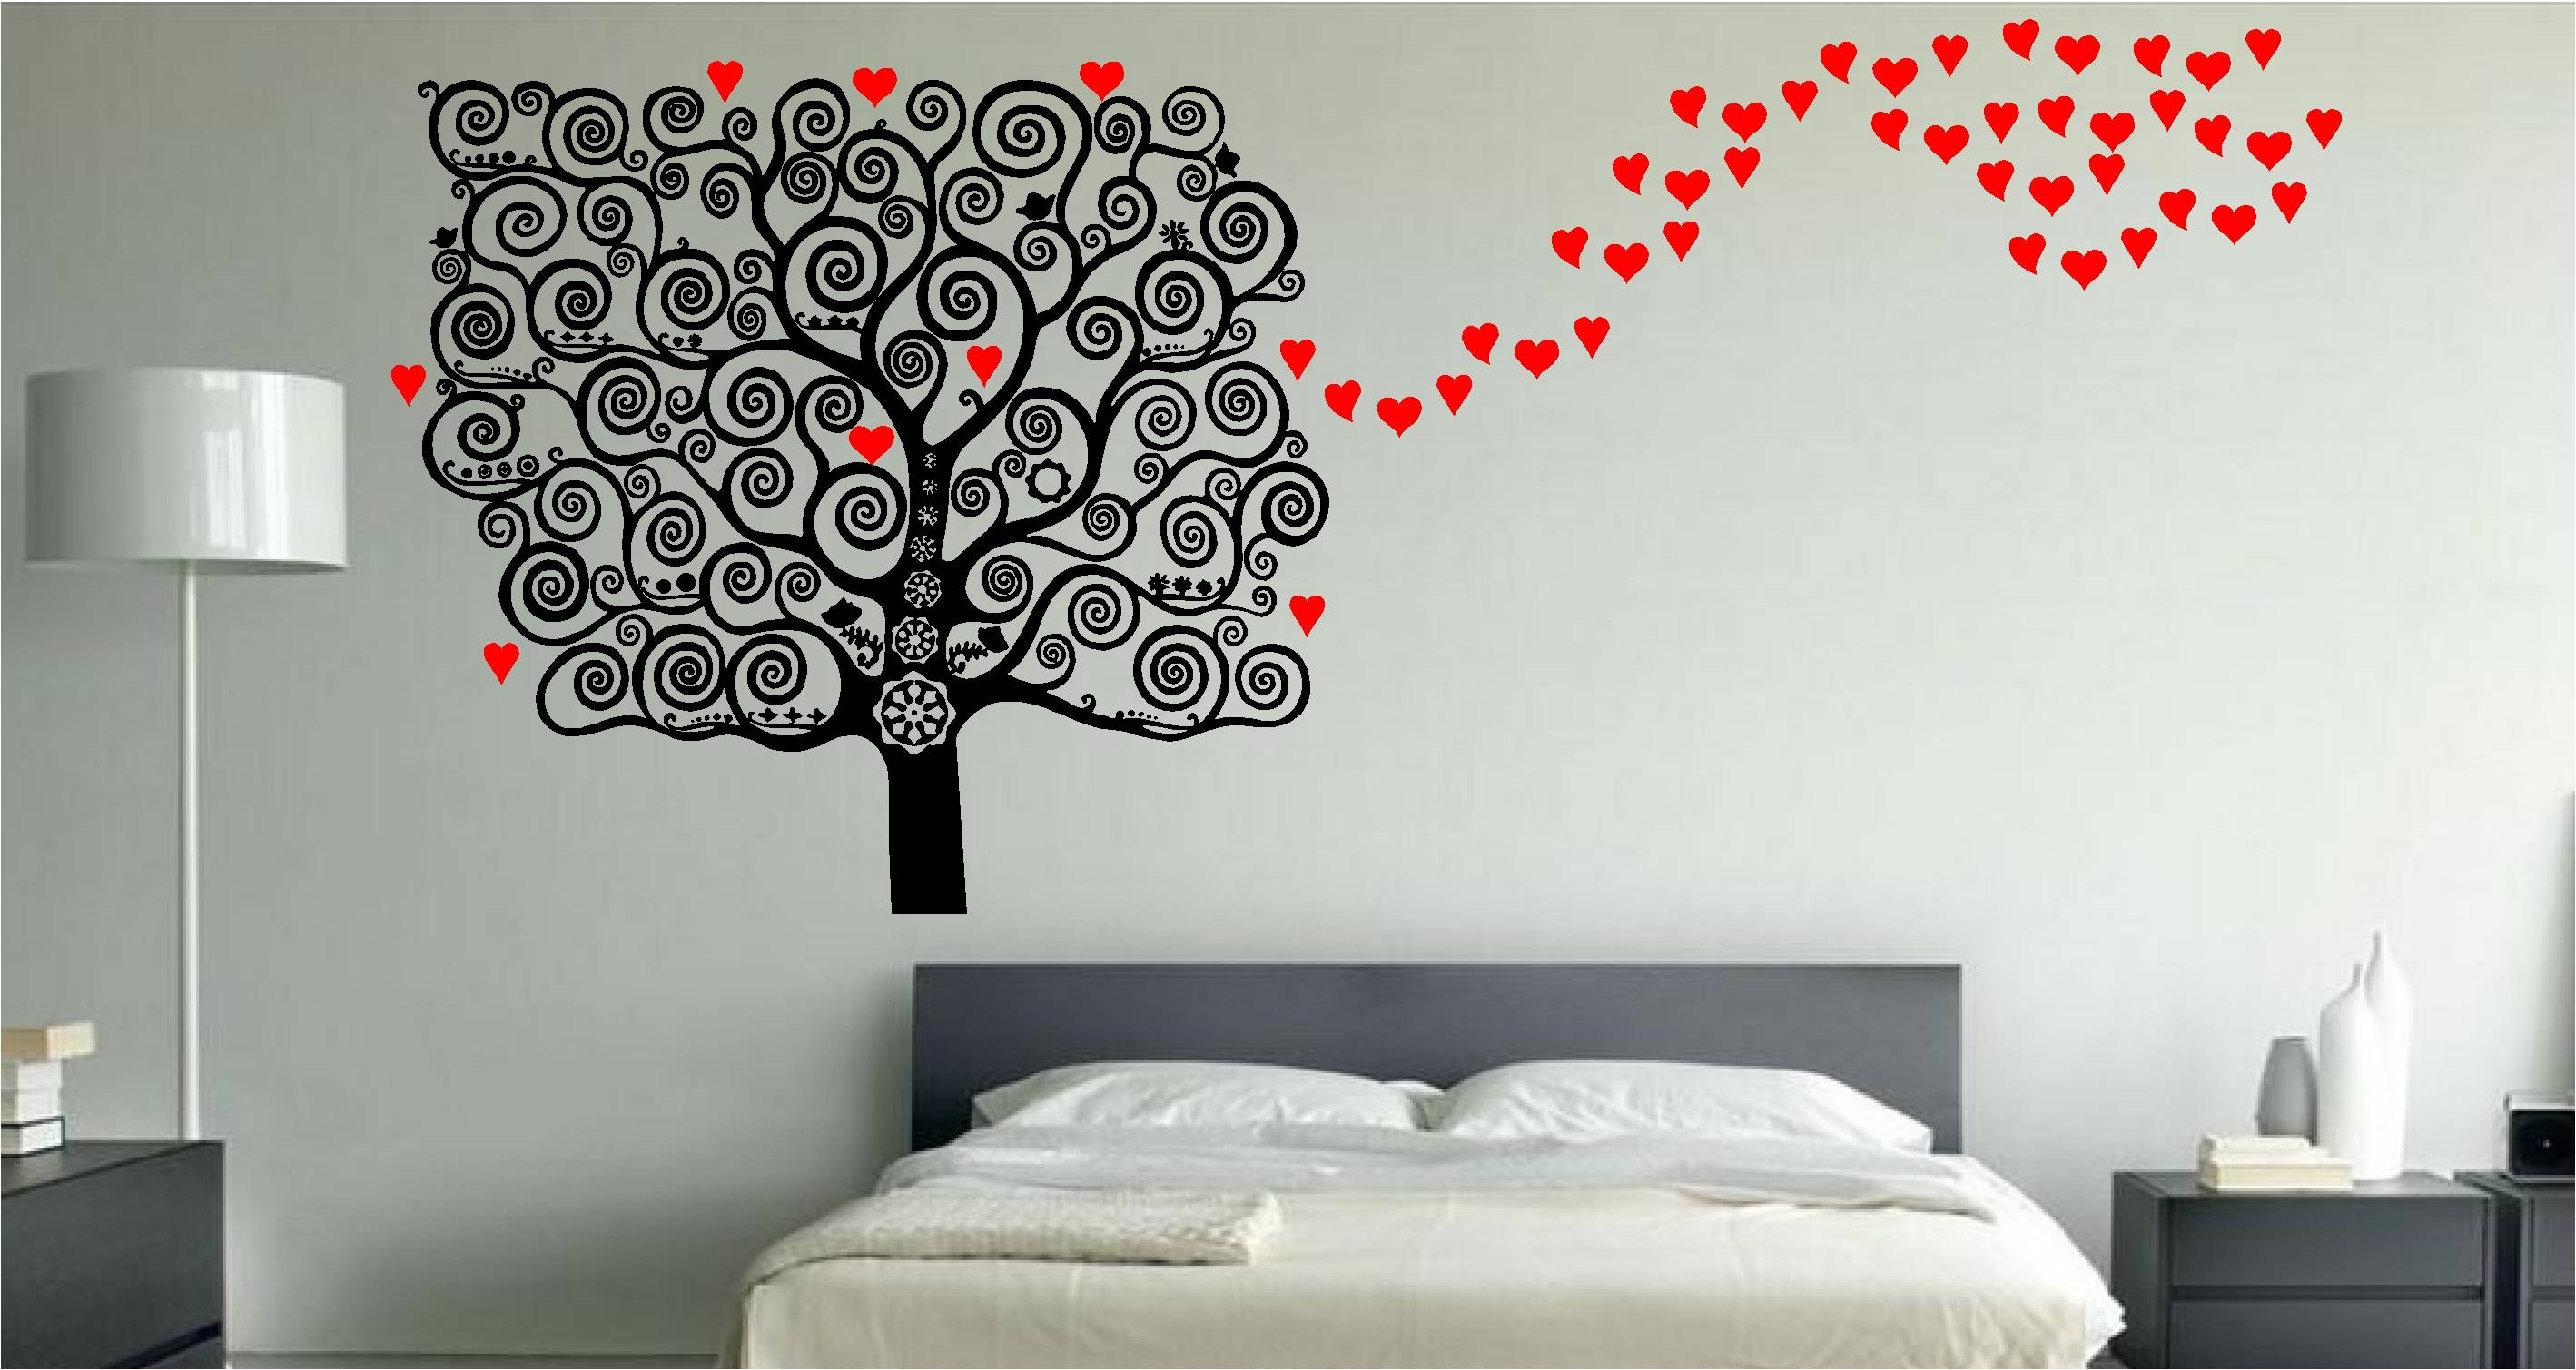 Wall Art Ideas Photo Pic Bedroom Art – Surripui Pertaining To Most Up To Date Bed Wall Art (View 24 of 25)